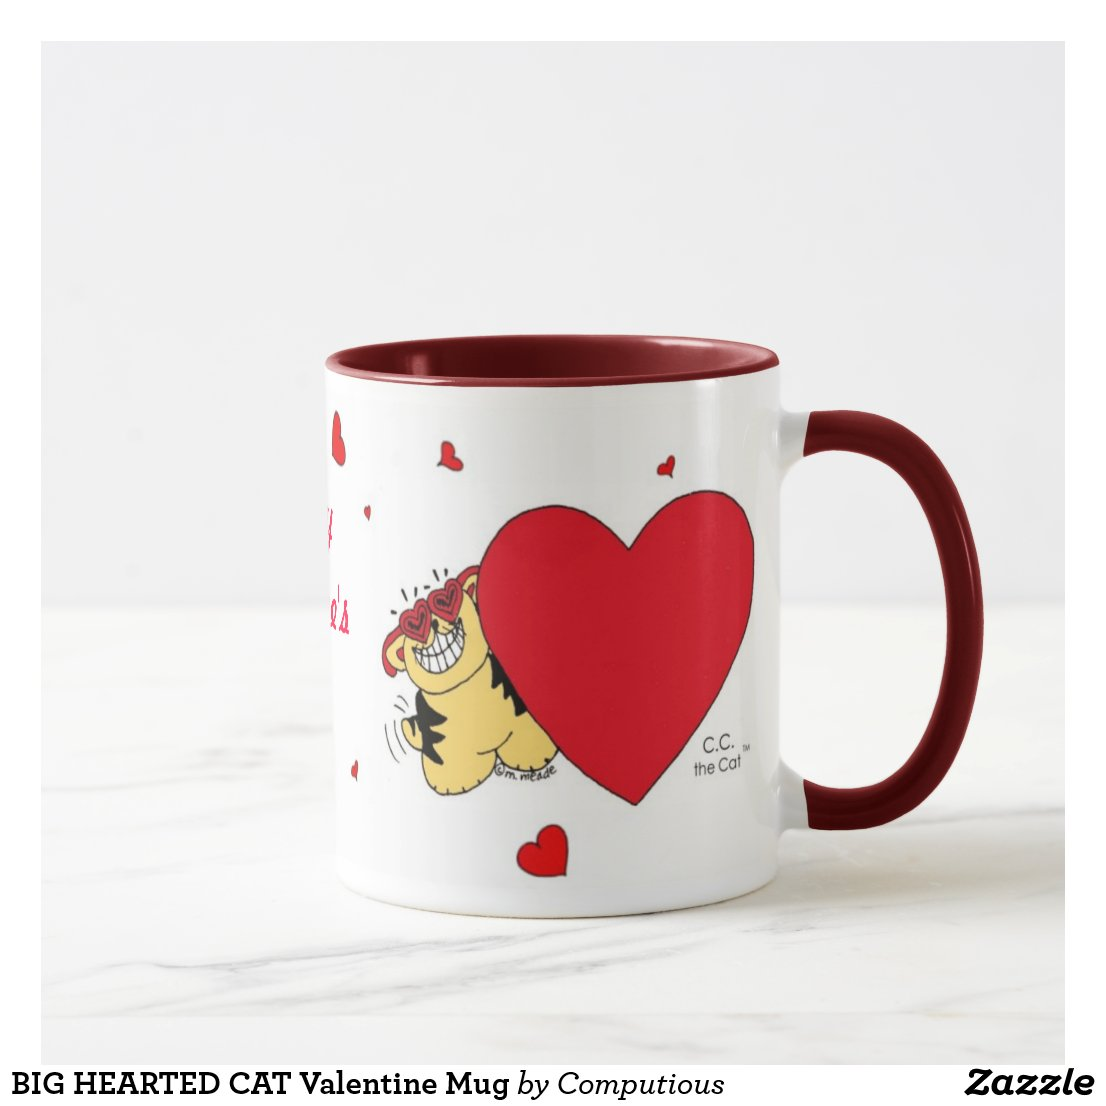 BIG HEARTED CAT Valentine Mug